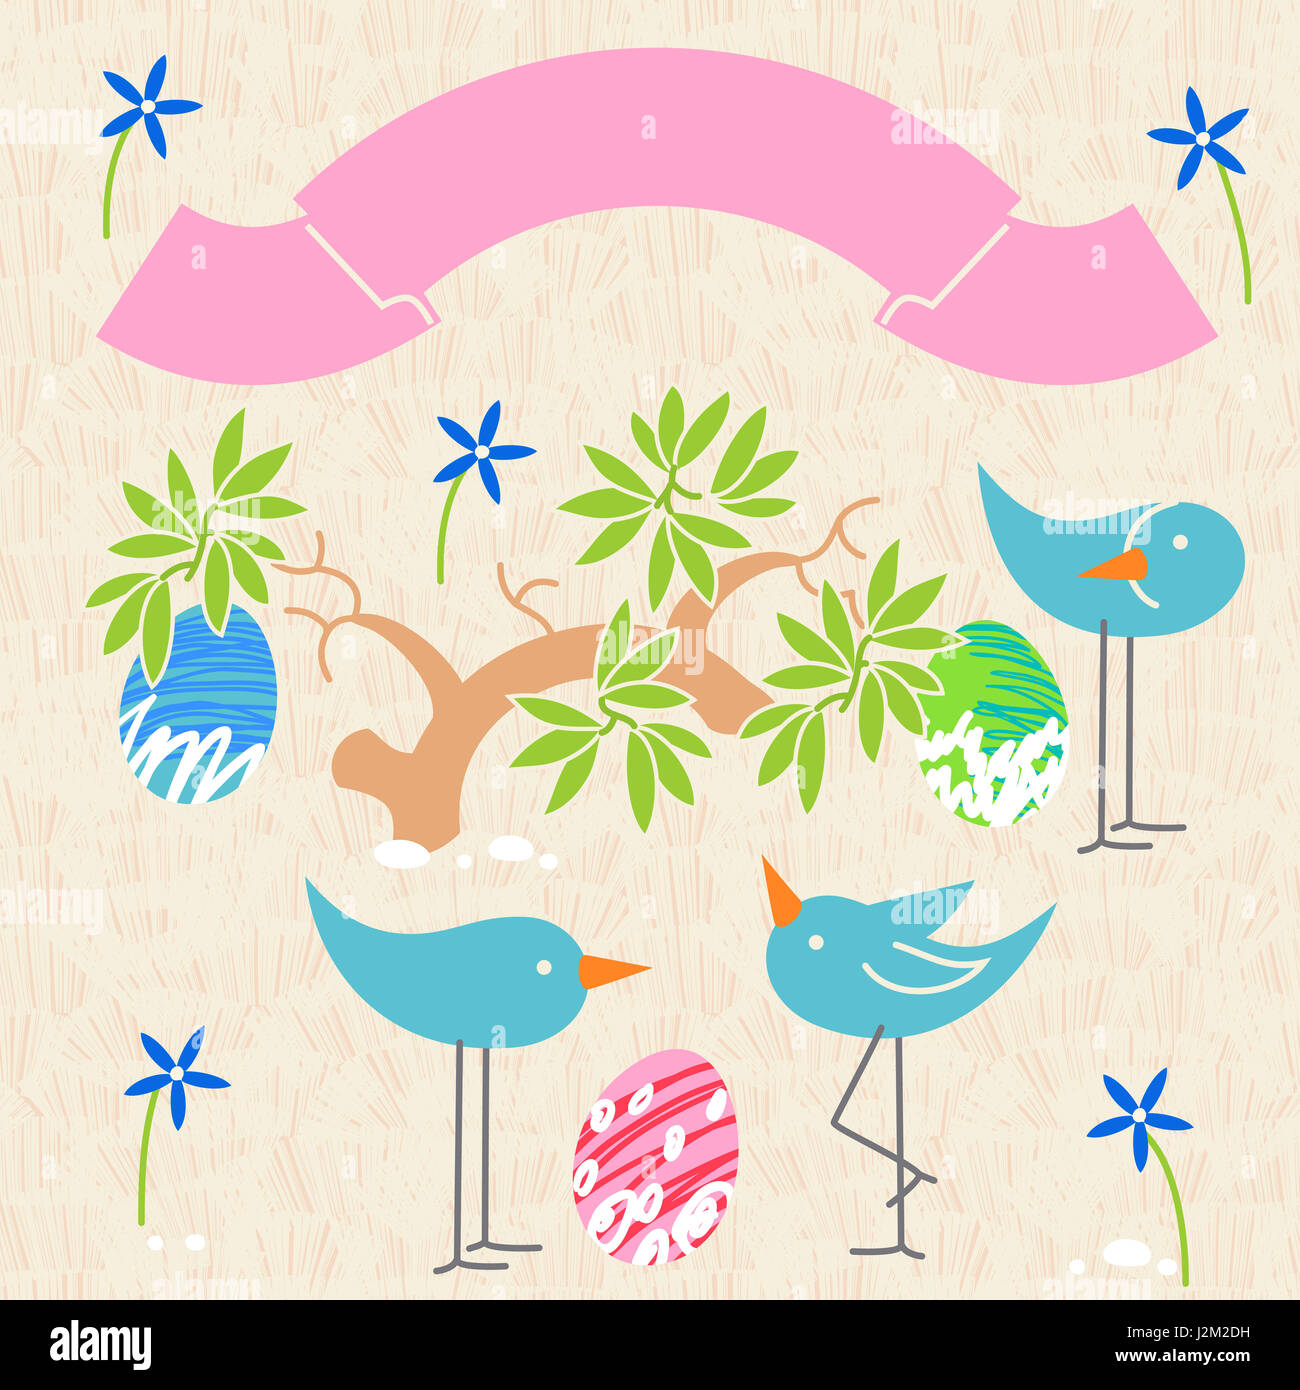 Cute Birds Baby Shower Invitation Card Design Layout Template Stock